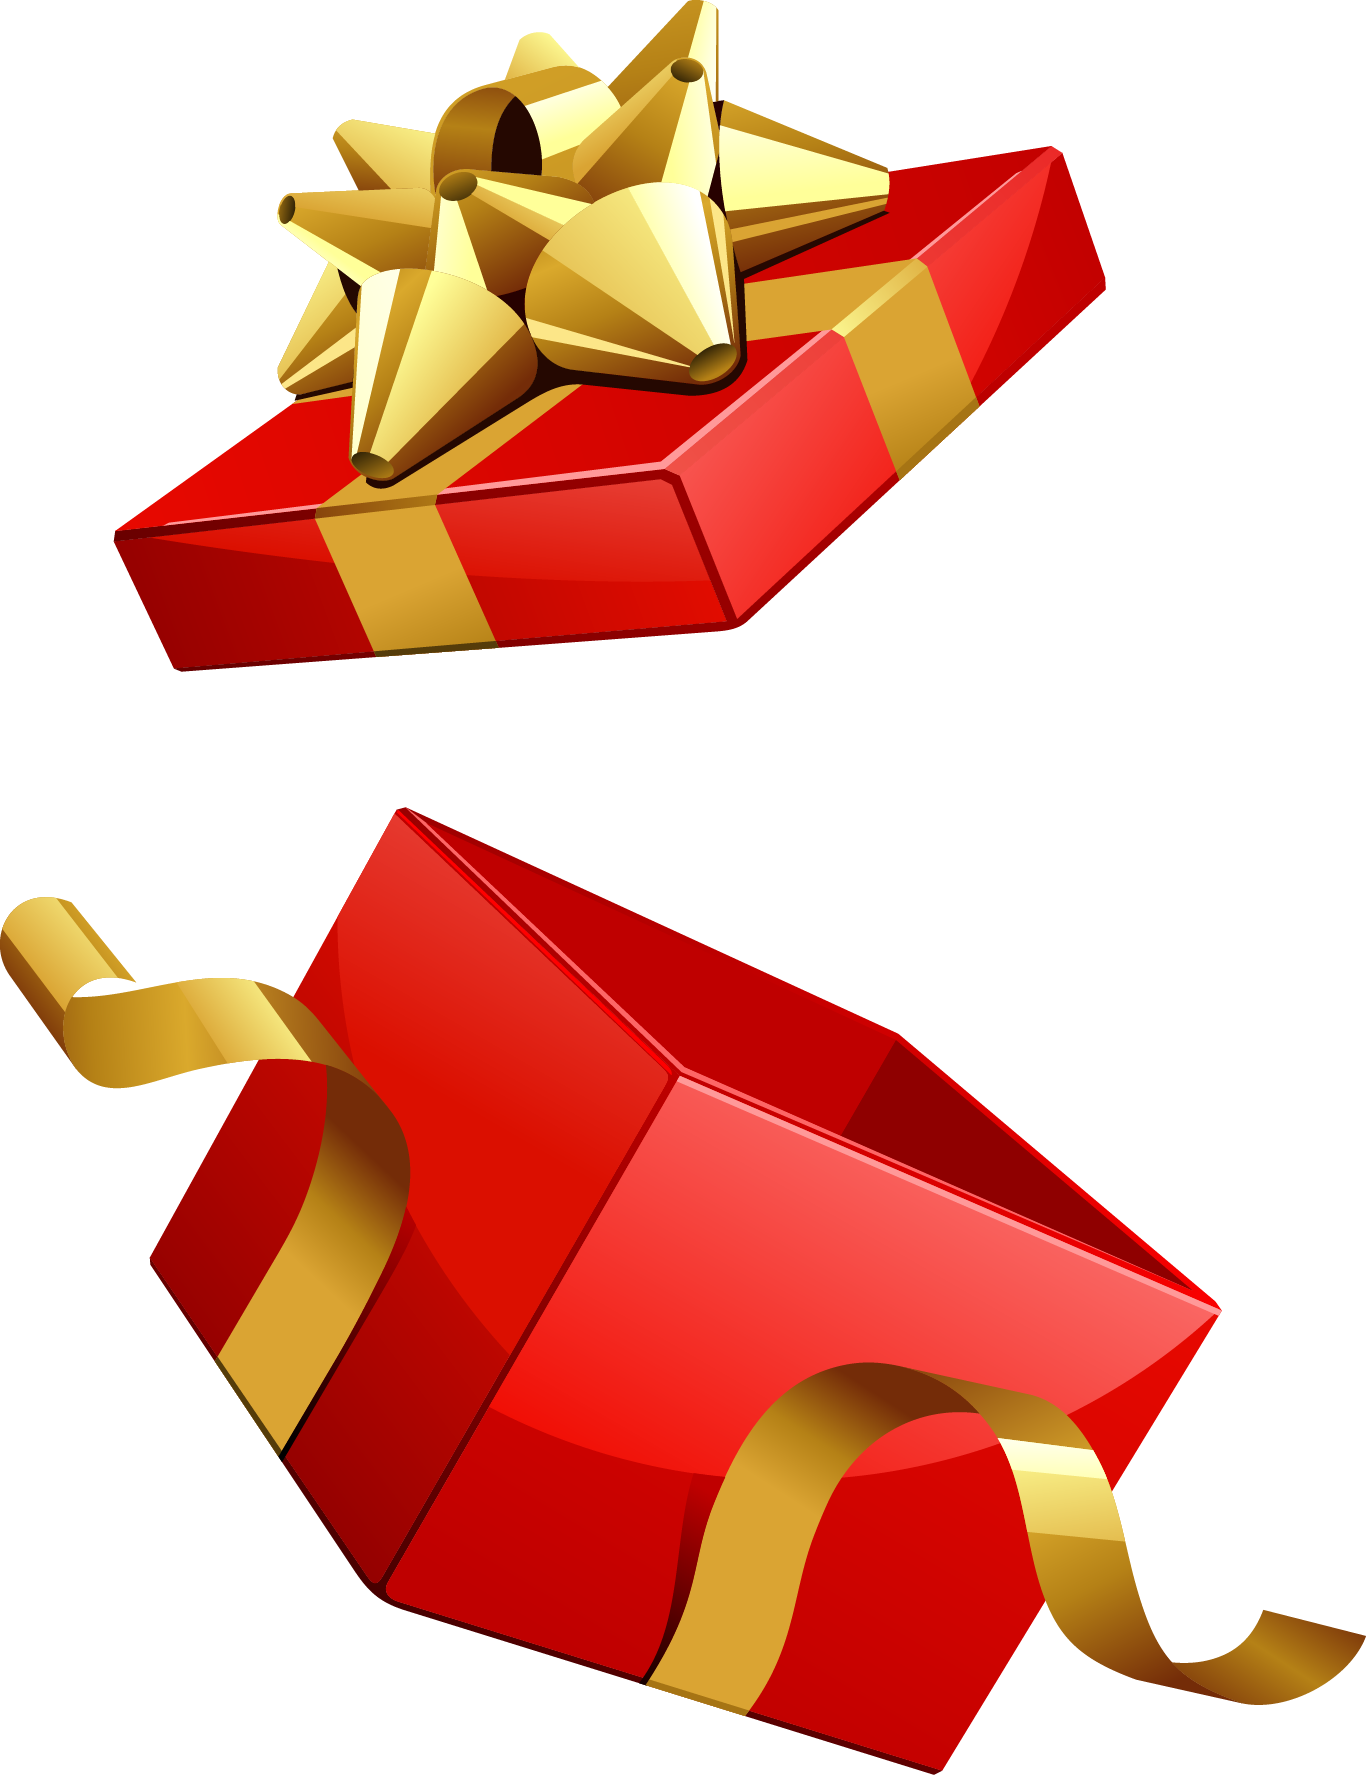 Christmas Gifts With Box Png Mesh Gift Vector Vector Free Red Gift Box